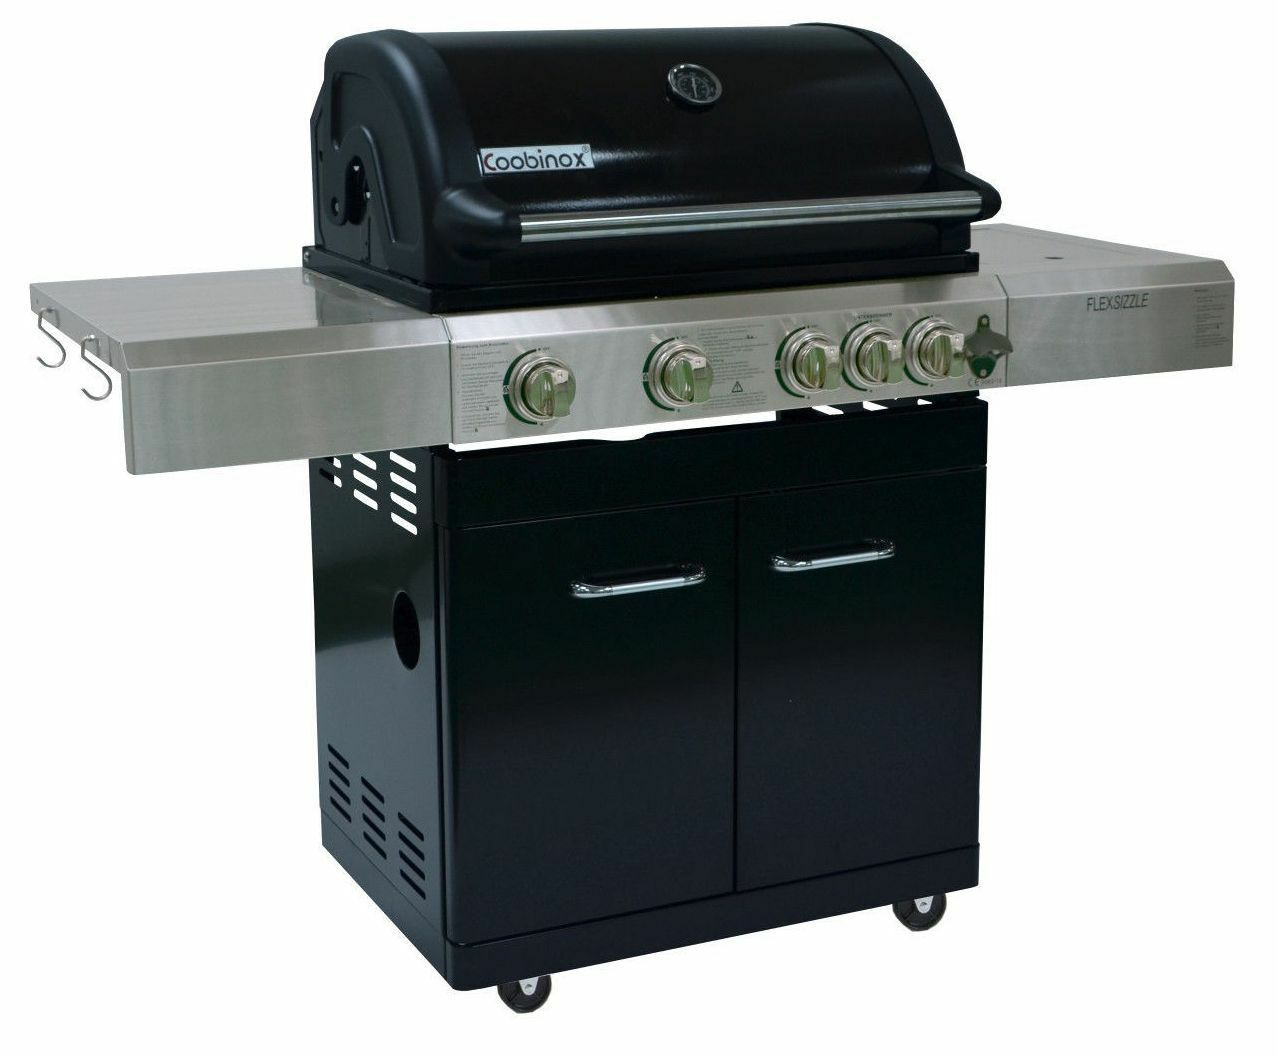 Enders Gasgrill Boston Black 4 Ik Test : Hp c 4 infrarot brenner gasgrill quarzglas kuppeln